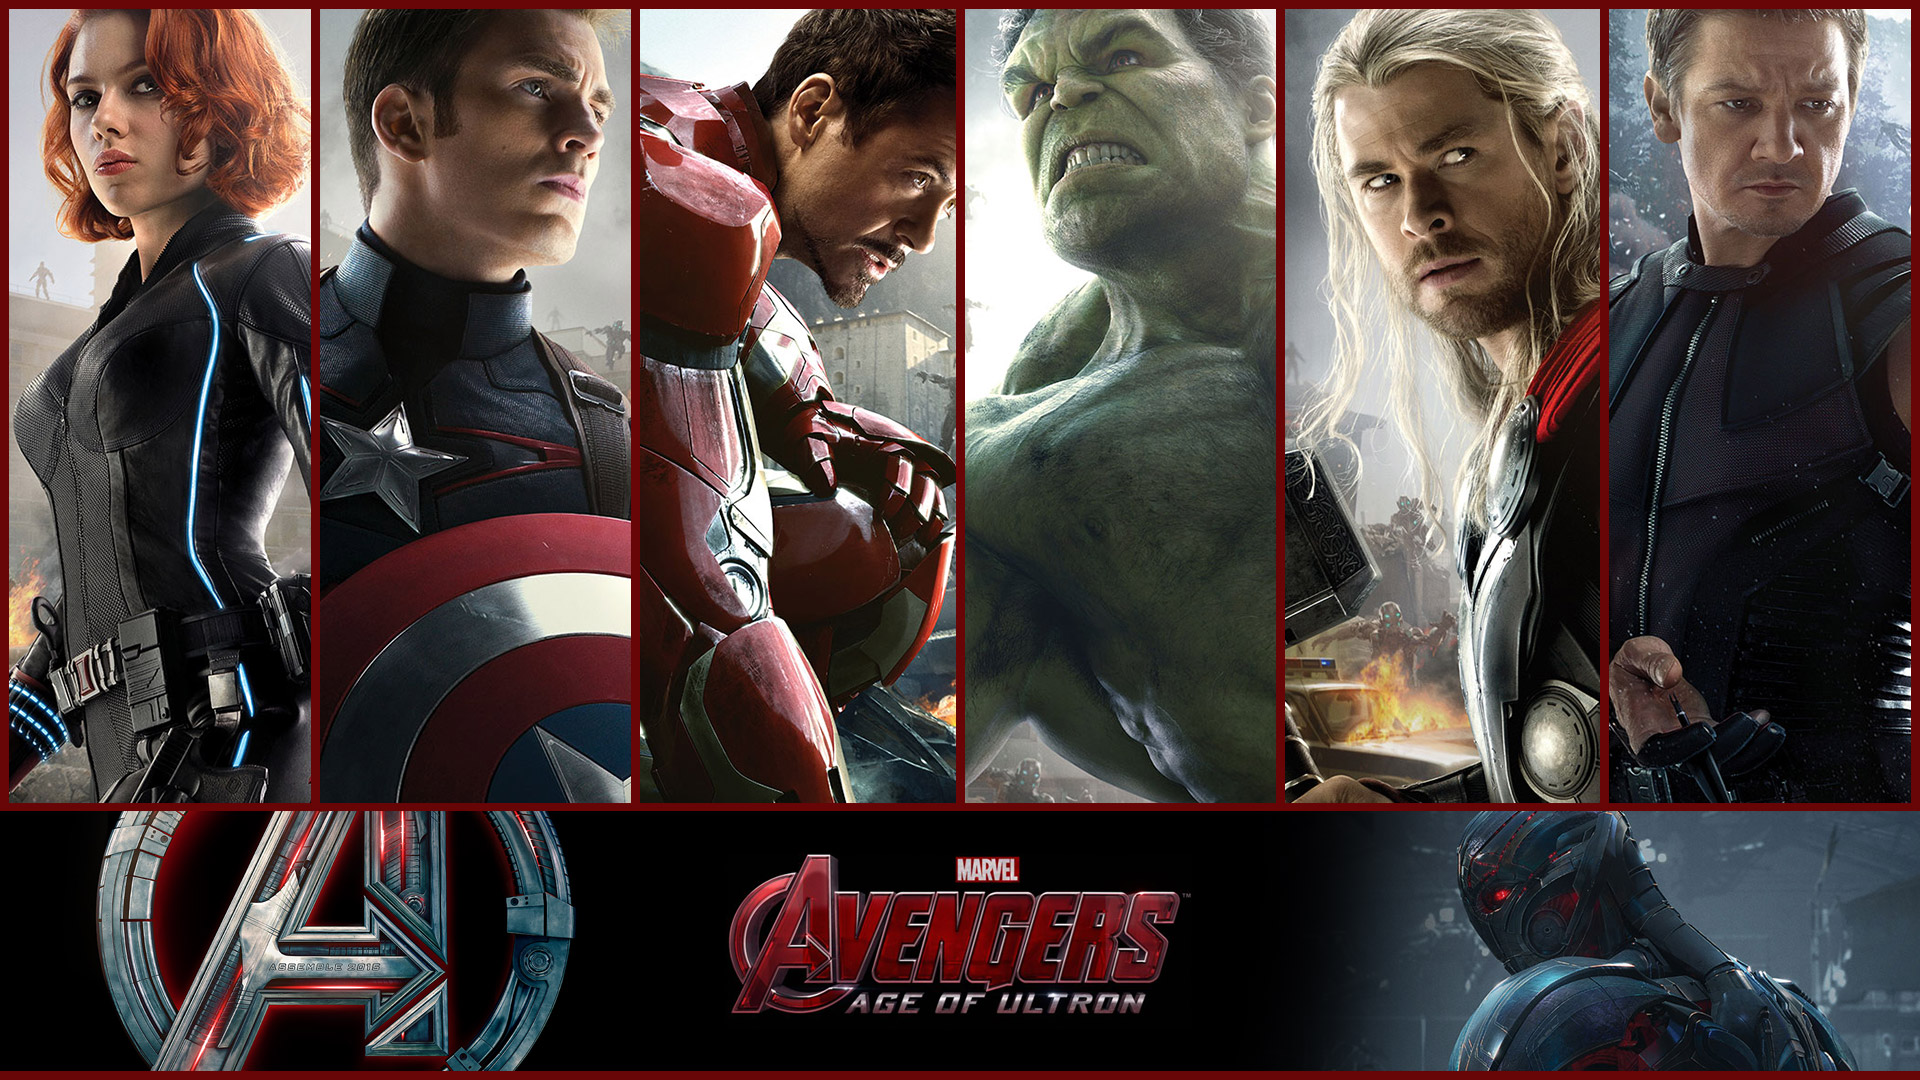 Avengers 2 Age Of Ultron 2015 Desktop Iphone 6 Wallpapers Hd